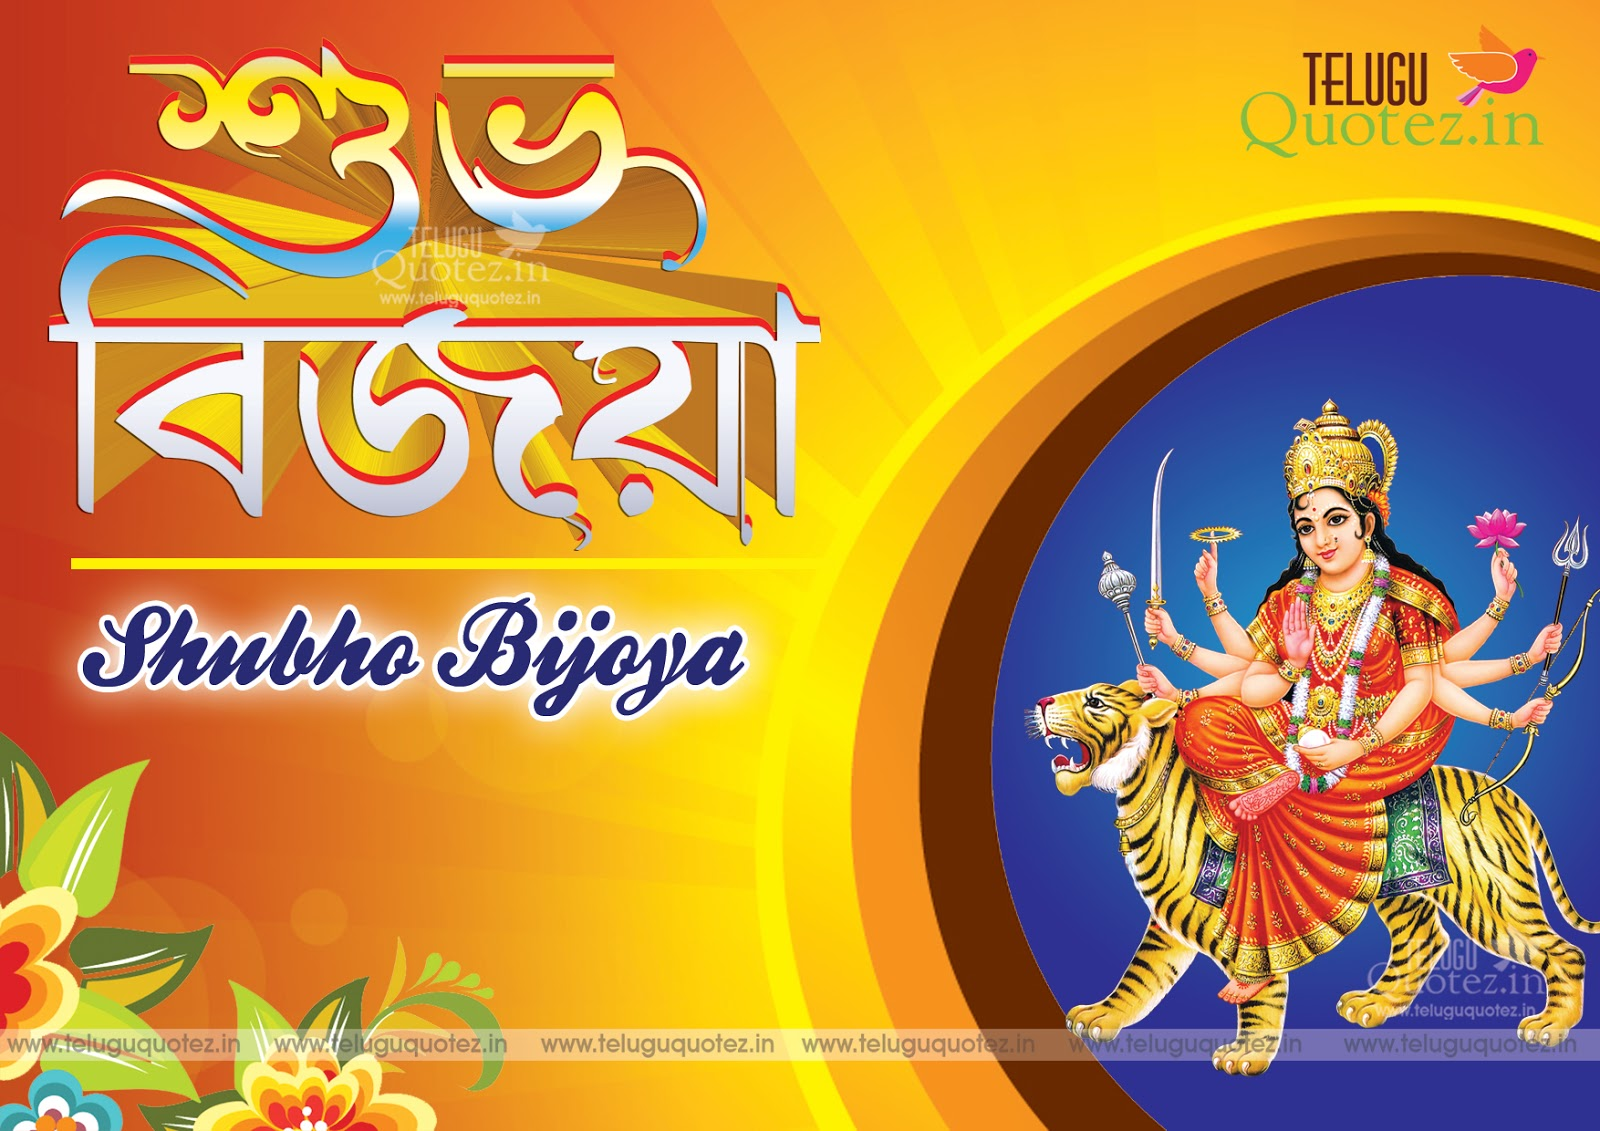 Famous happy dussehra and durga pooja bengali quotes teluguquotez latest bengali happy dussehra quotes and greetings in bengali language for facebook m4hsunfo